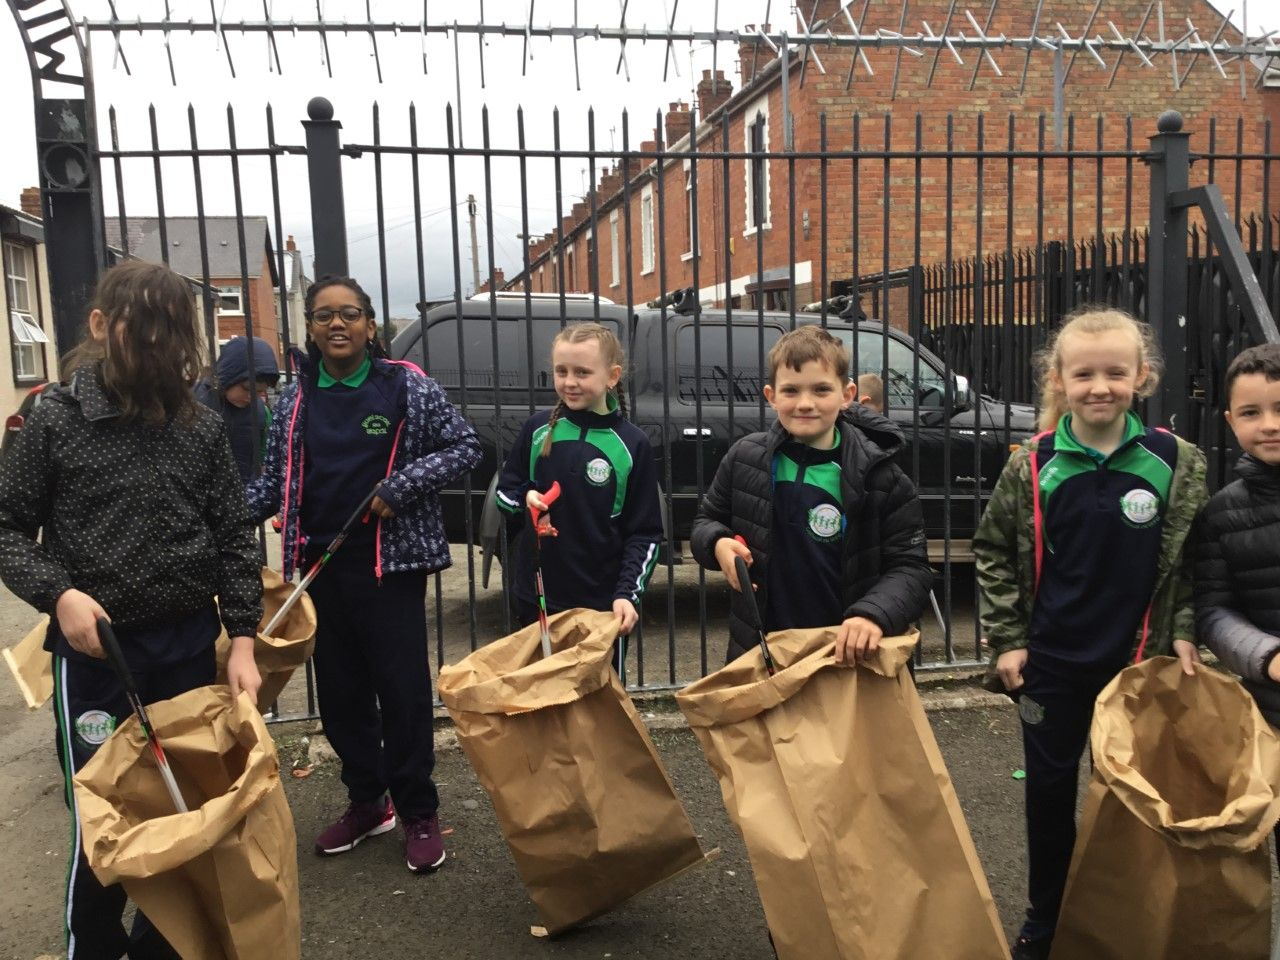 NEW YEAR:Despite the challenges that 2020 threw up, the school community at Gaelscoil na bhFál met them headlong and came out the other side stronger